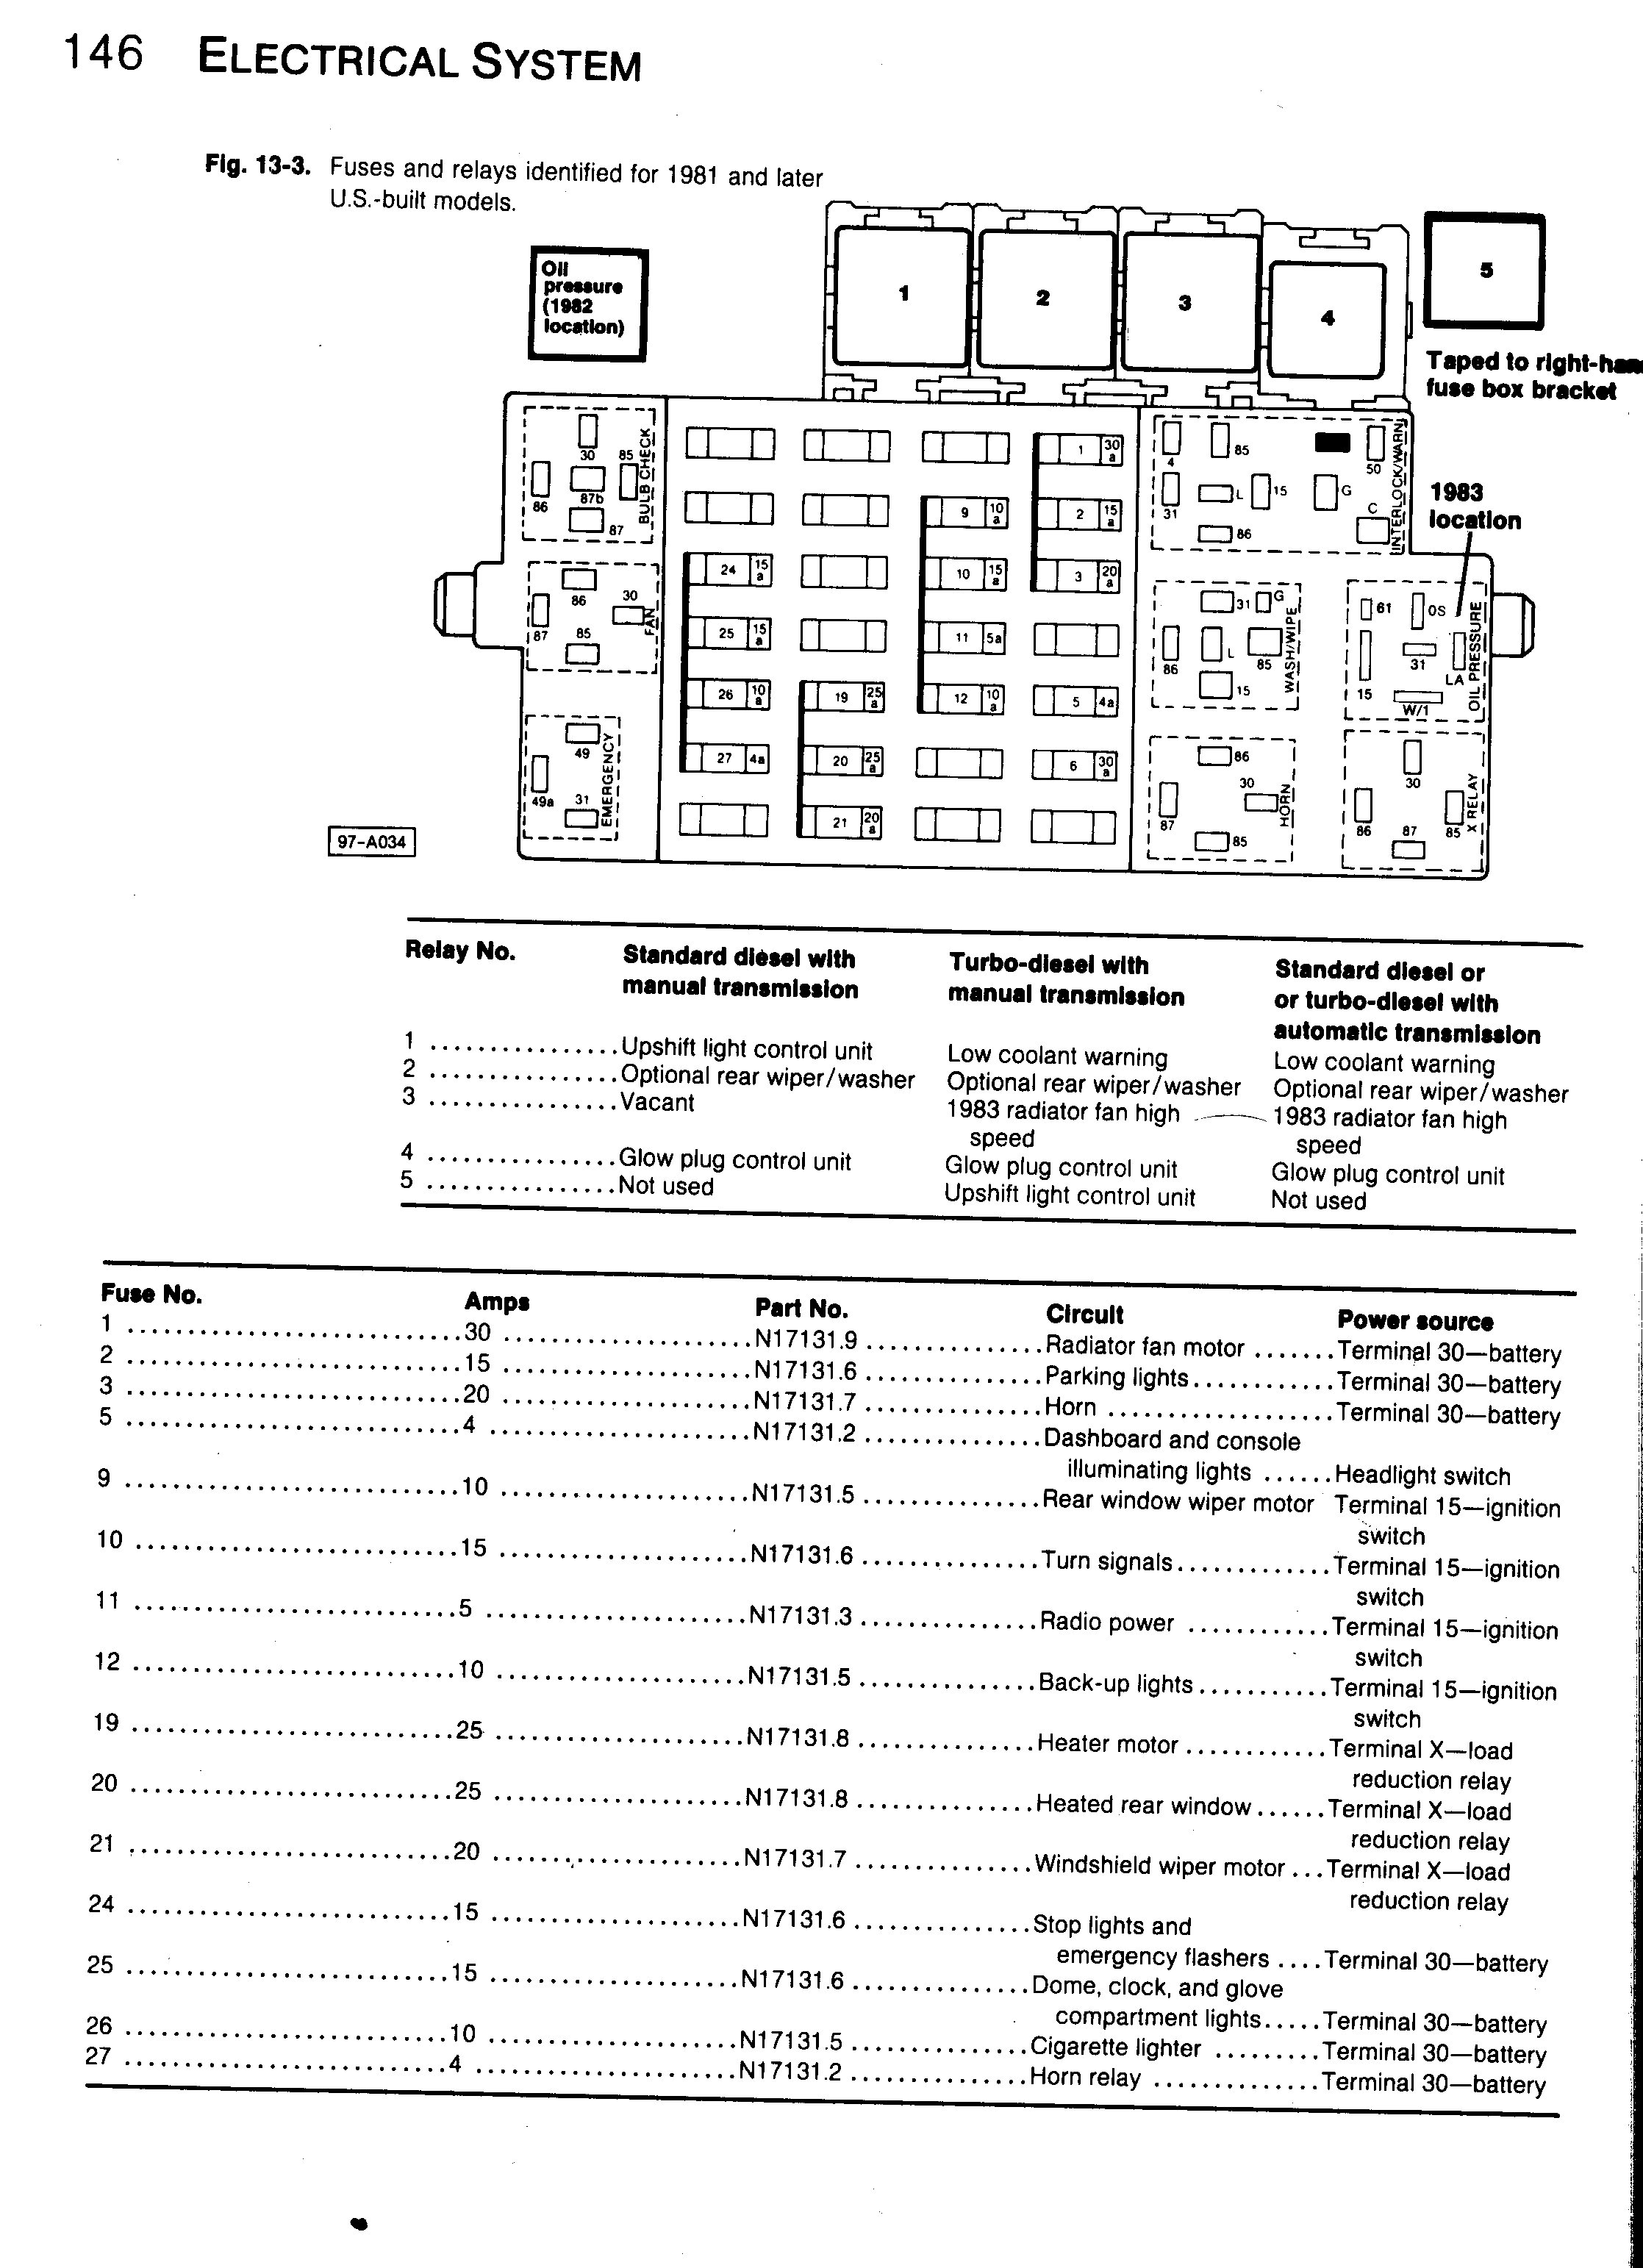 E8db5 Fuse Box Diagram For Pontiac Grand Am